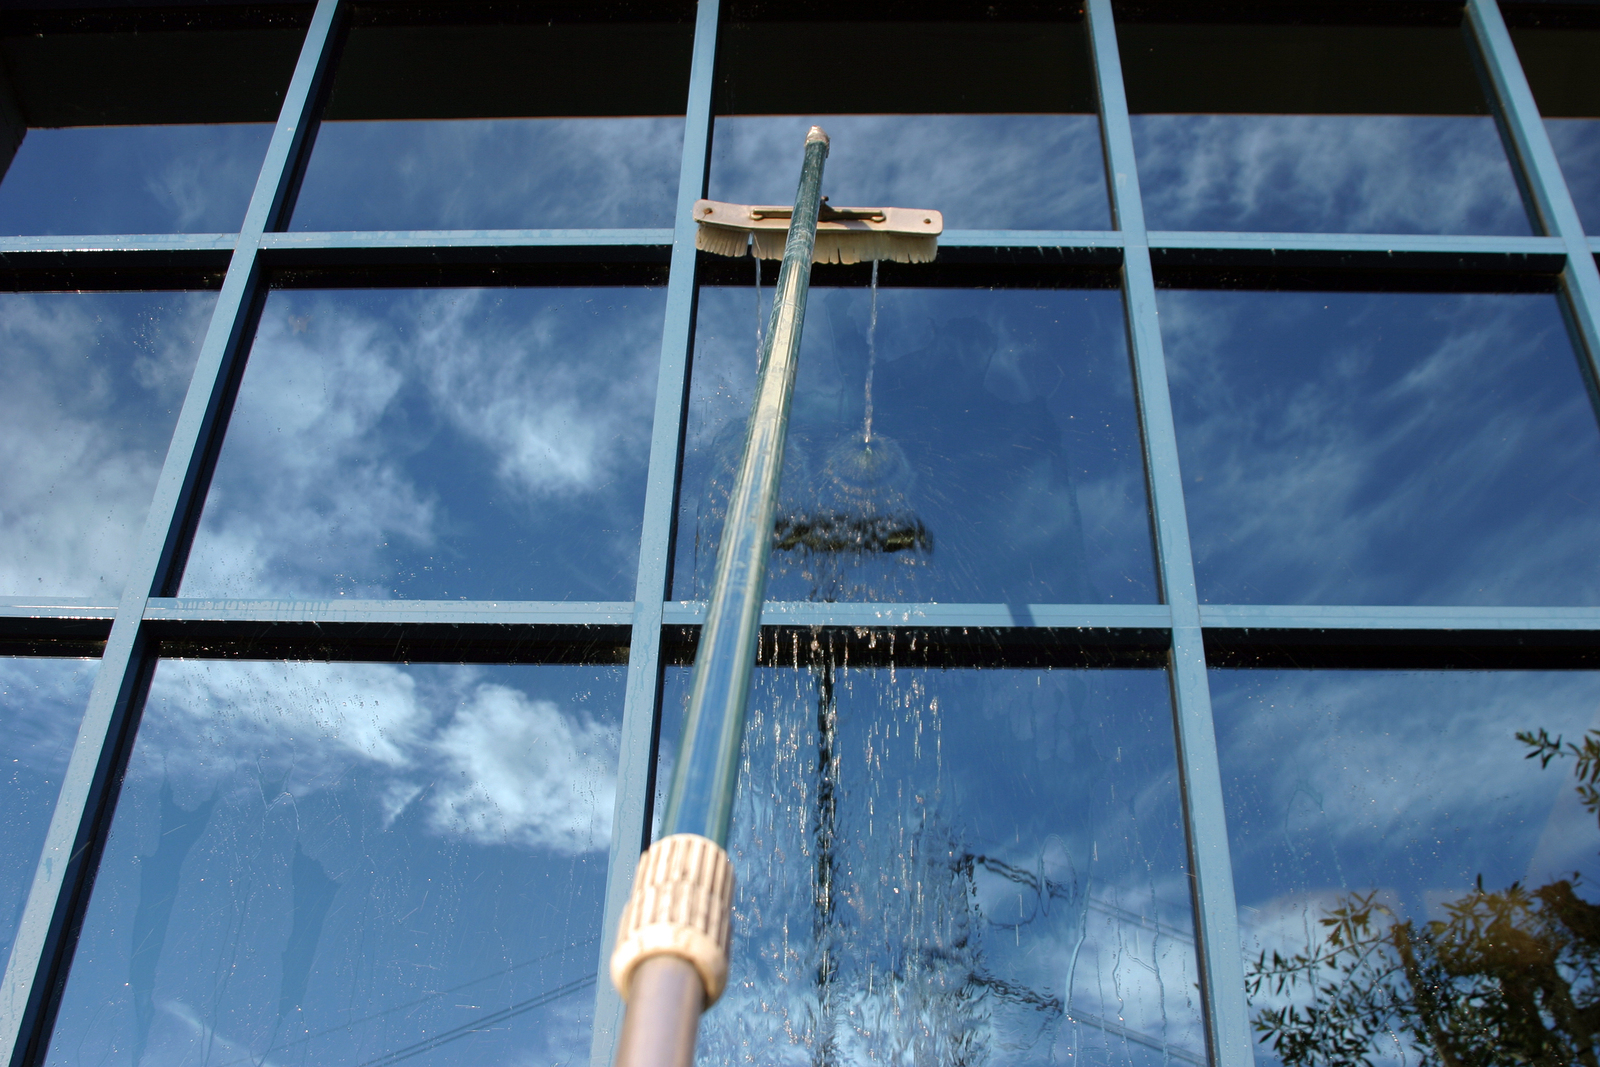 Window Washing with Deionized water and extension pole. For a Sp